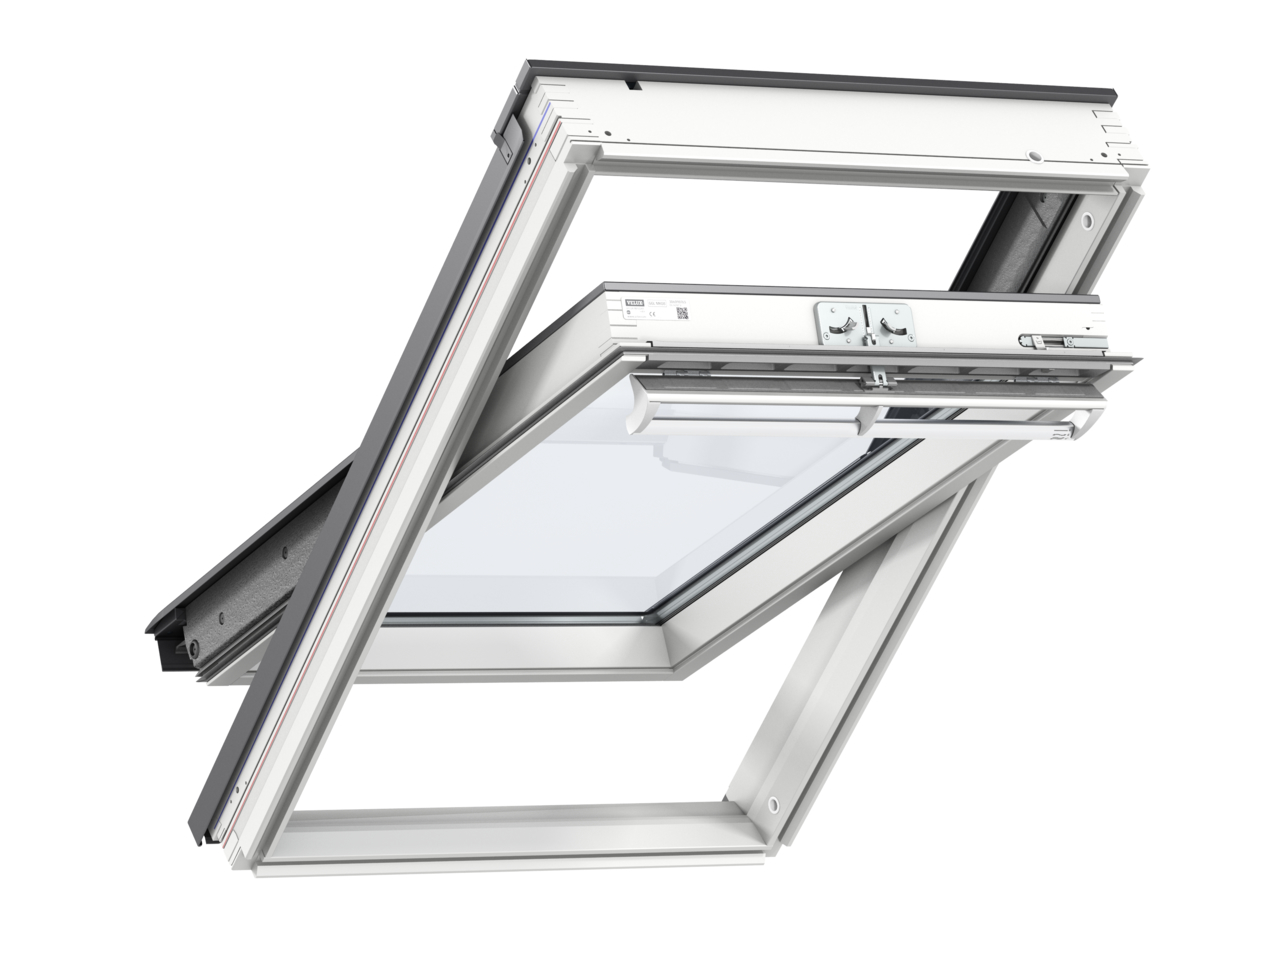 Velux GGL UK08 1340 x 1400mm Centre Pivot Standard 70Pane Roof Window - White Painted